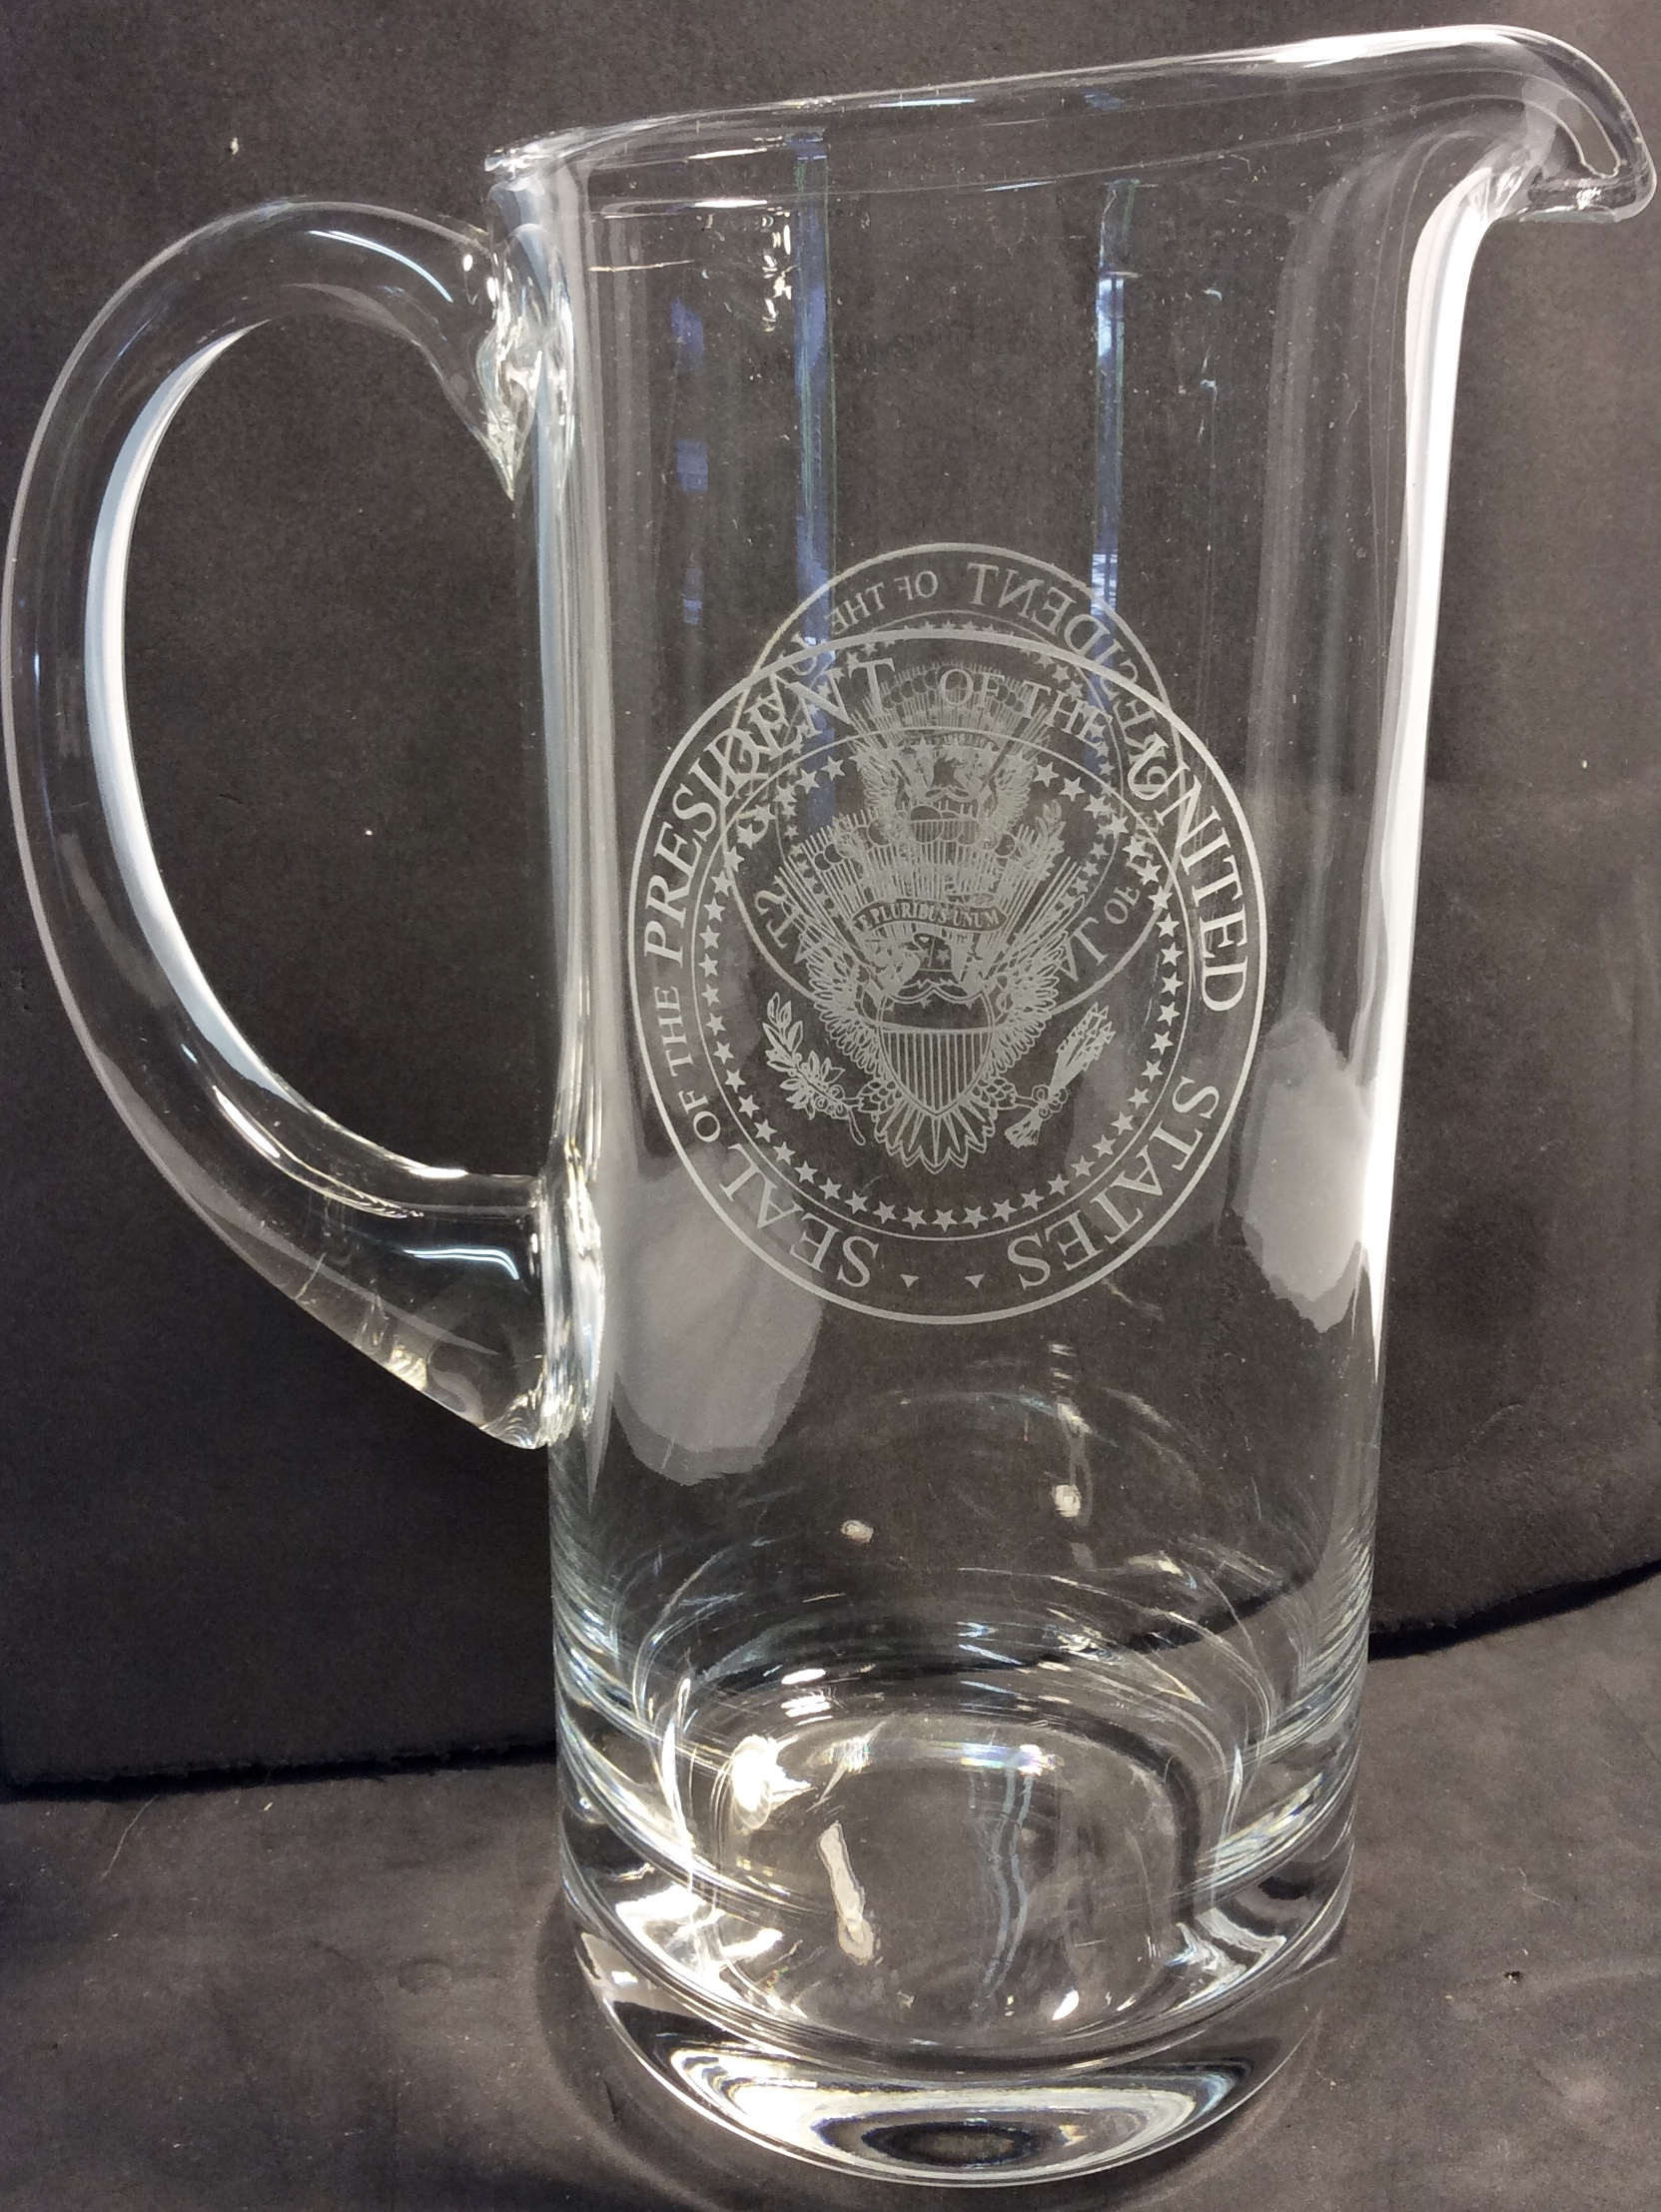 POTUS glass water jar